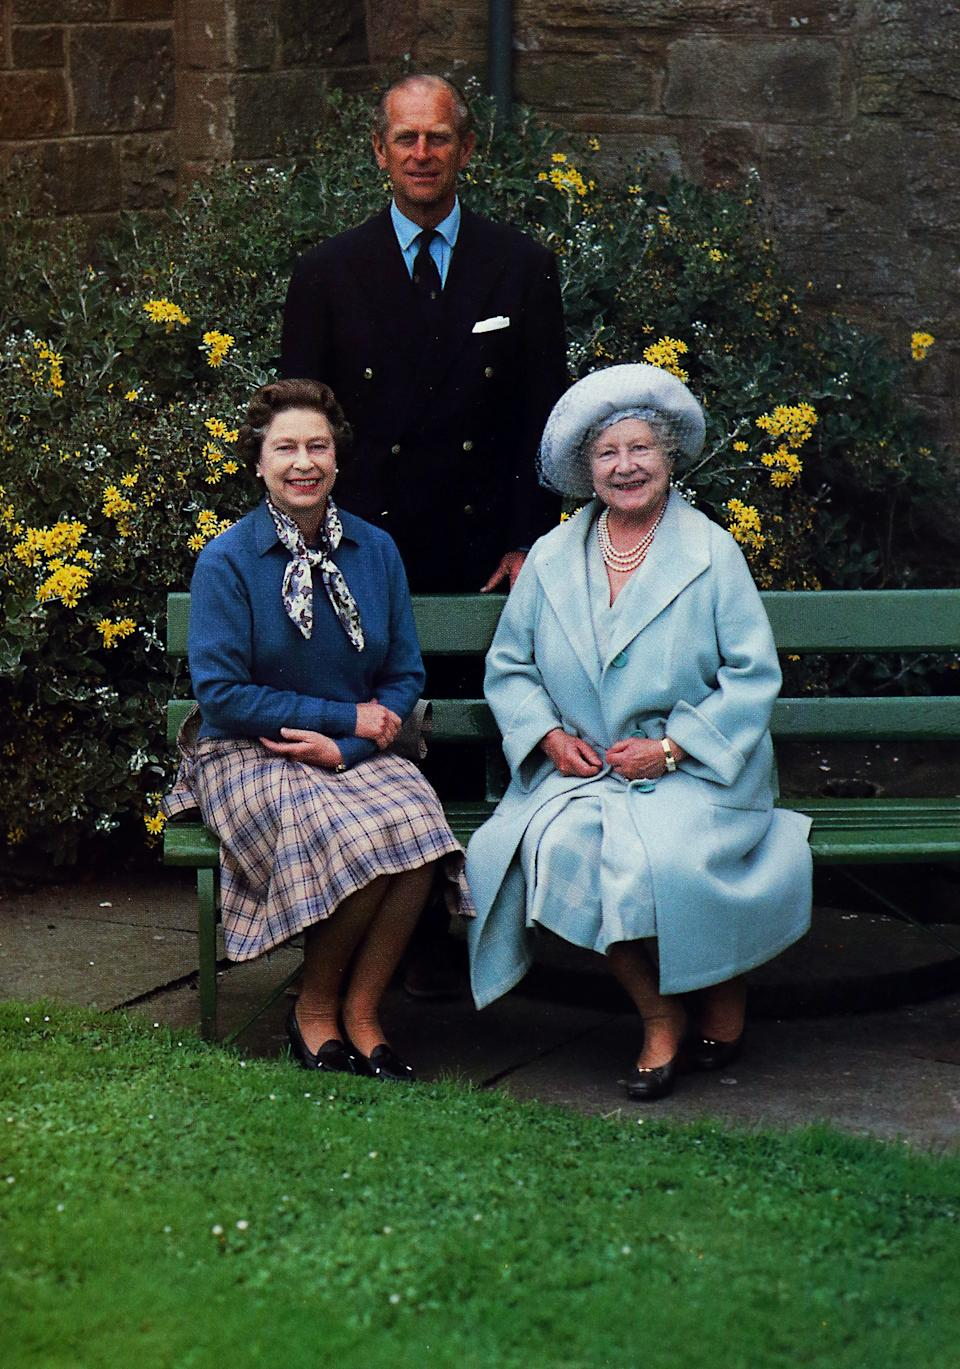 A photograph from a Christmas card dated 1985 showing Queen Elizabeth II and the Duke of Edinburgh alongside the Queen Mother in her 85th year, at Omega Auctions in Stockport. [Photo: PA]